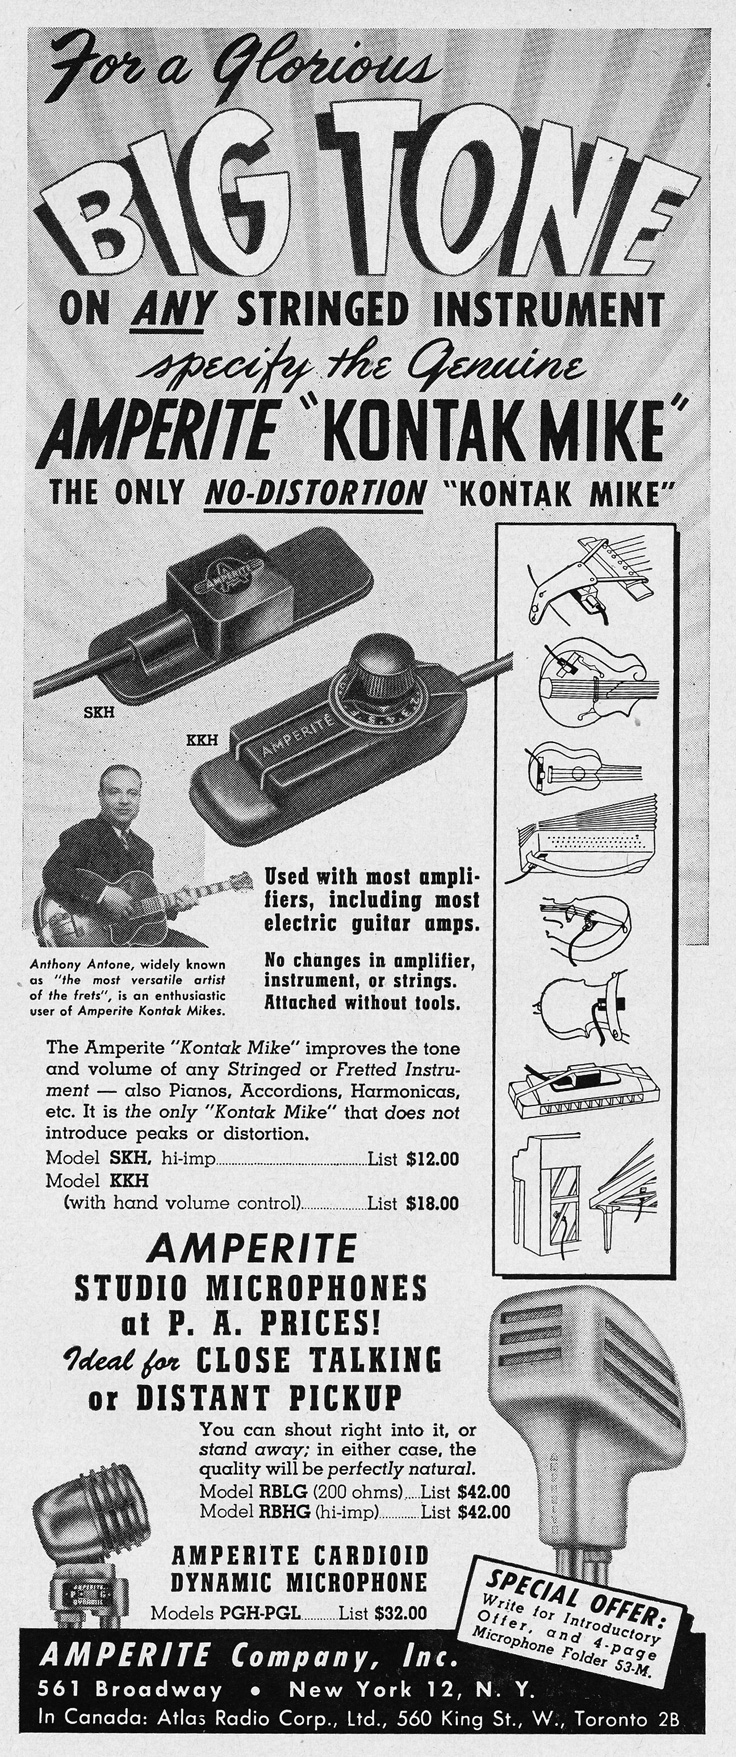 1951 ad for Amperite Studio microphones in   Reel2ReelTexas.com's vintage recording collection